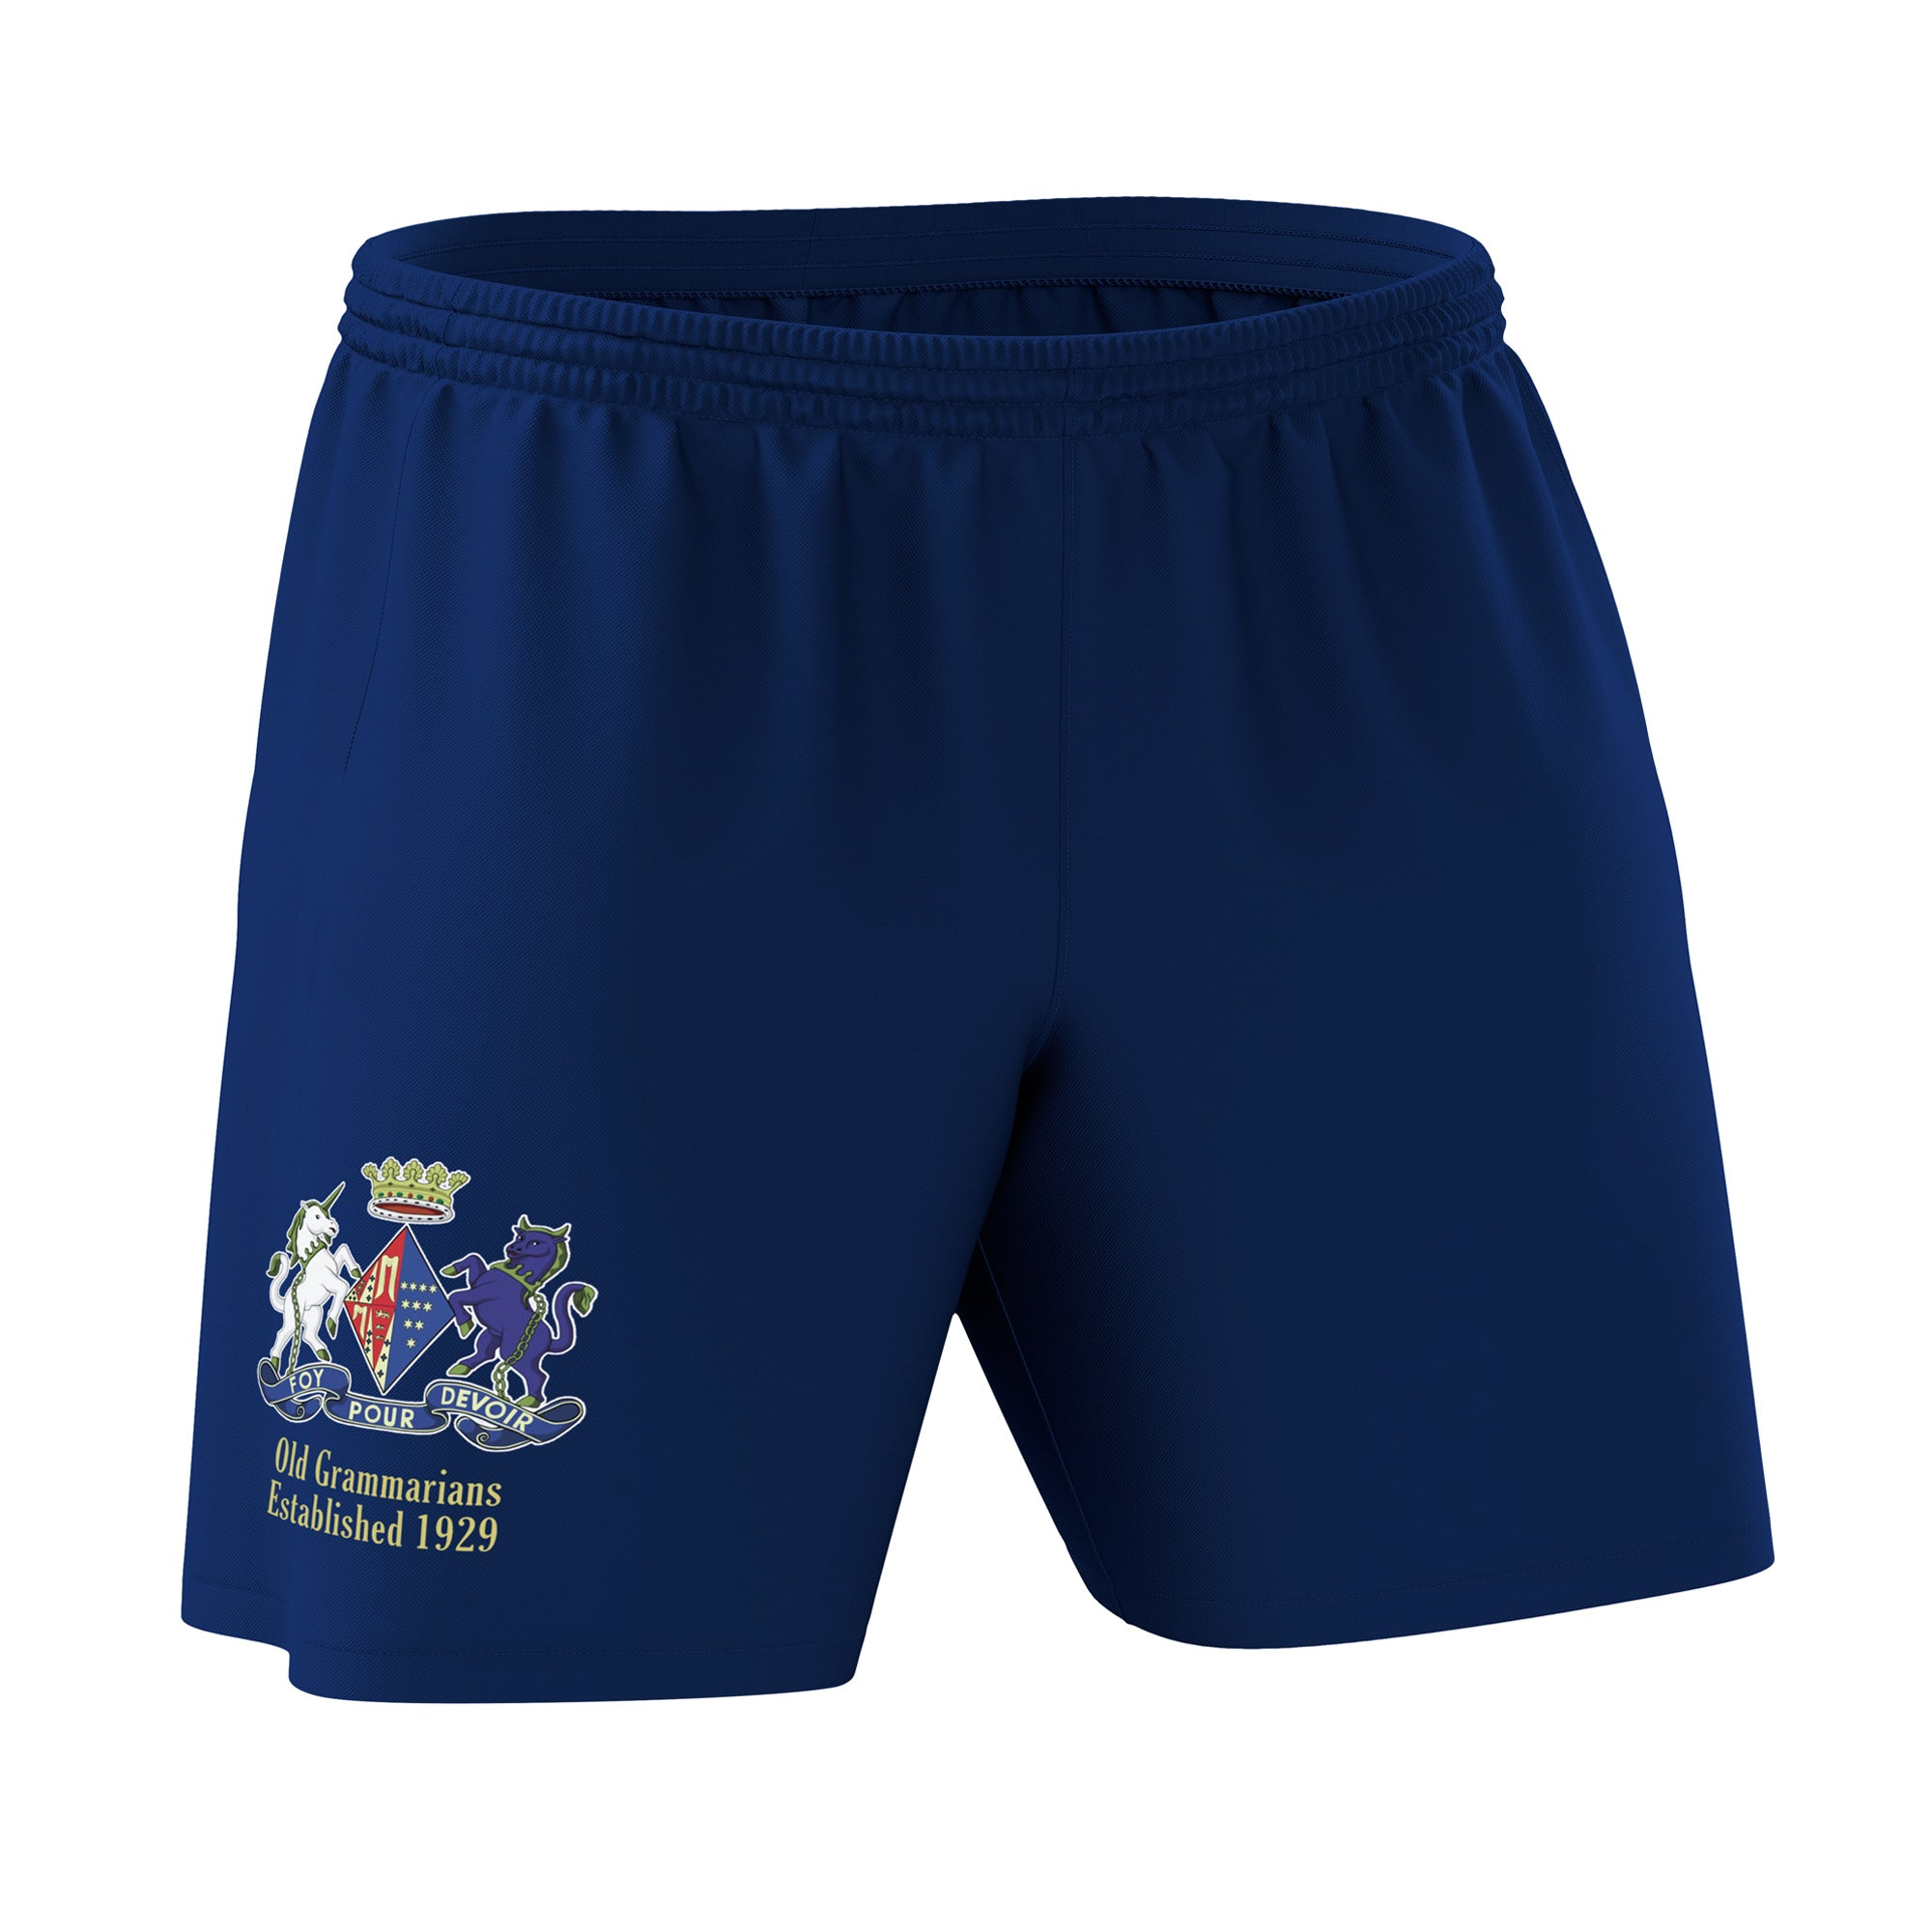 OGRFC Junior - Playing Shorts